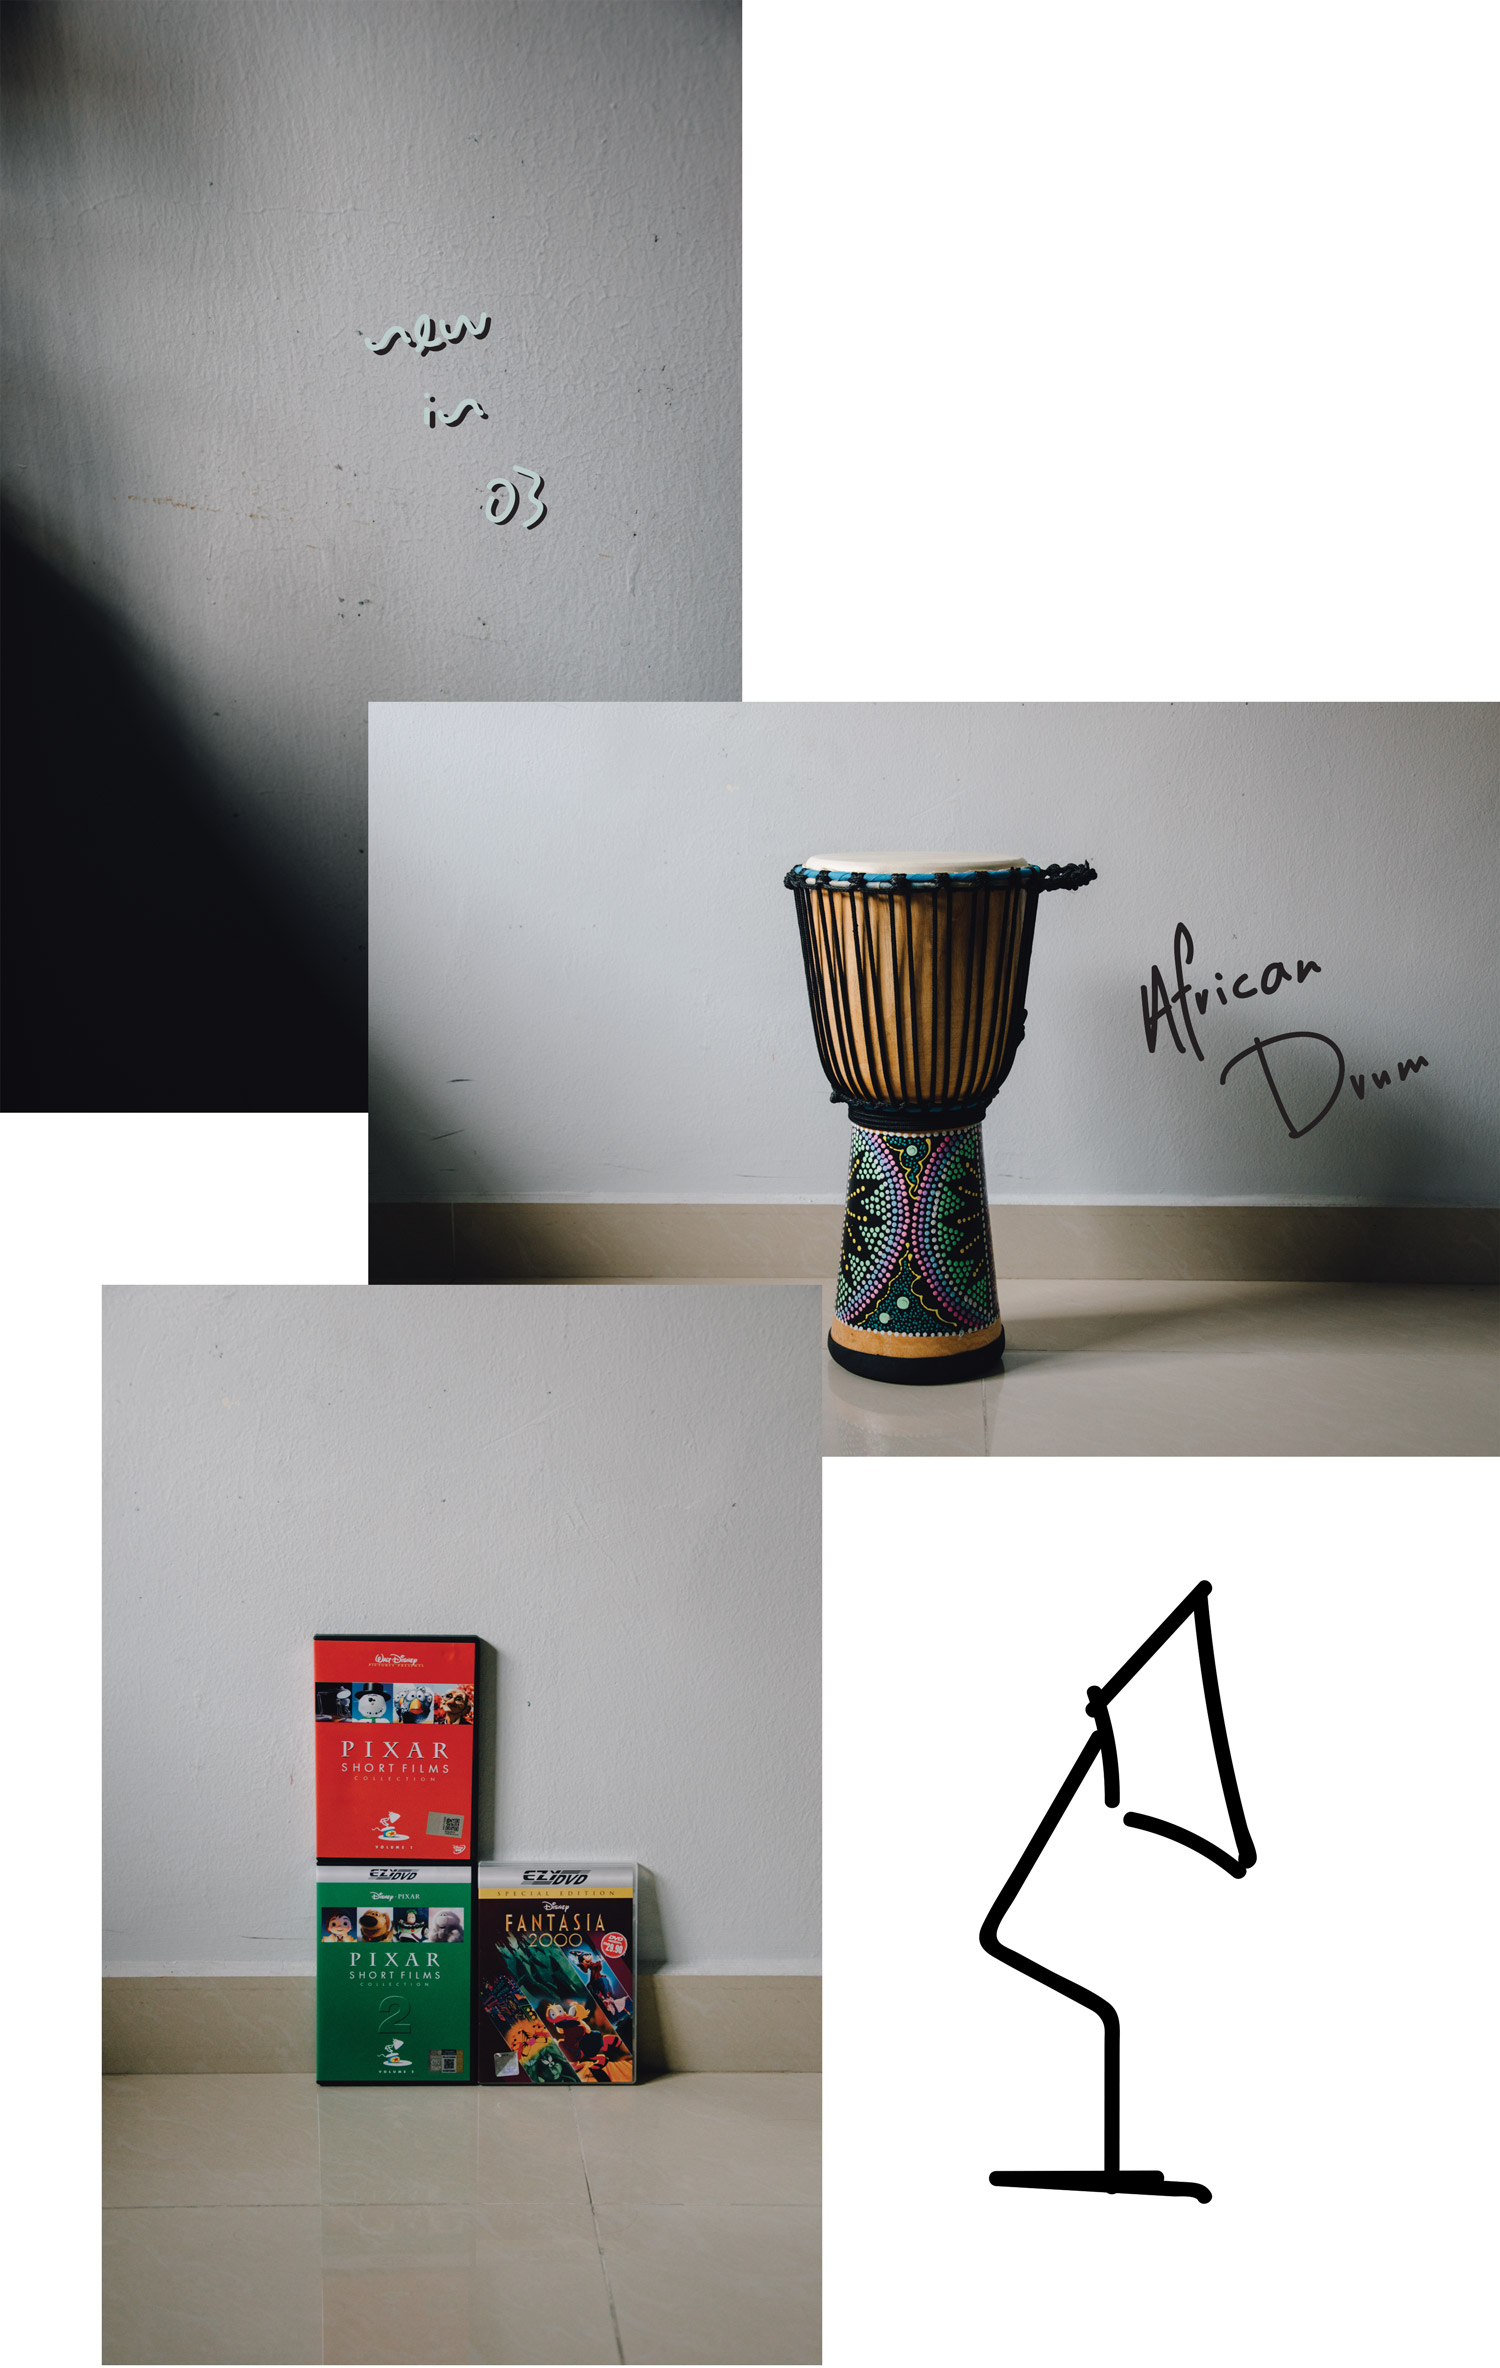 New In: African Drum + Pixar Short Films Collection Volume 1 + Pixar Short Films Collection Volume 2 + Disney Fantasia 2000 | A Beautiful Distraction